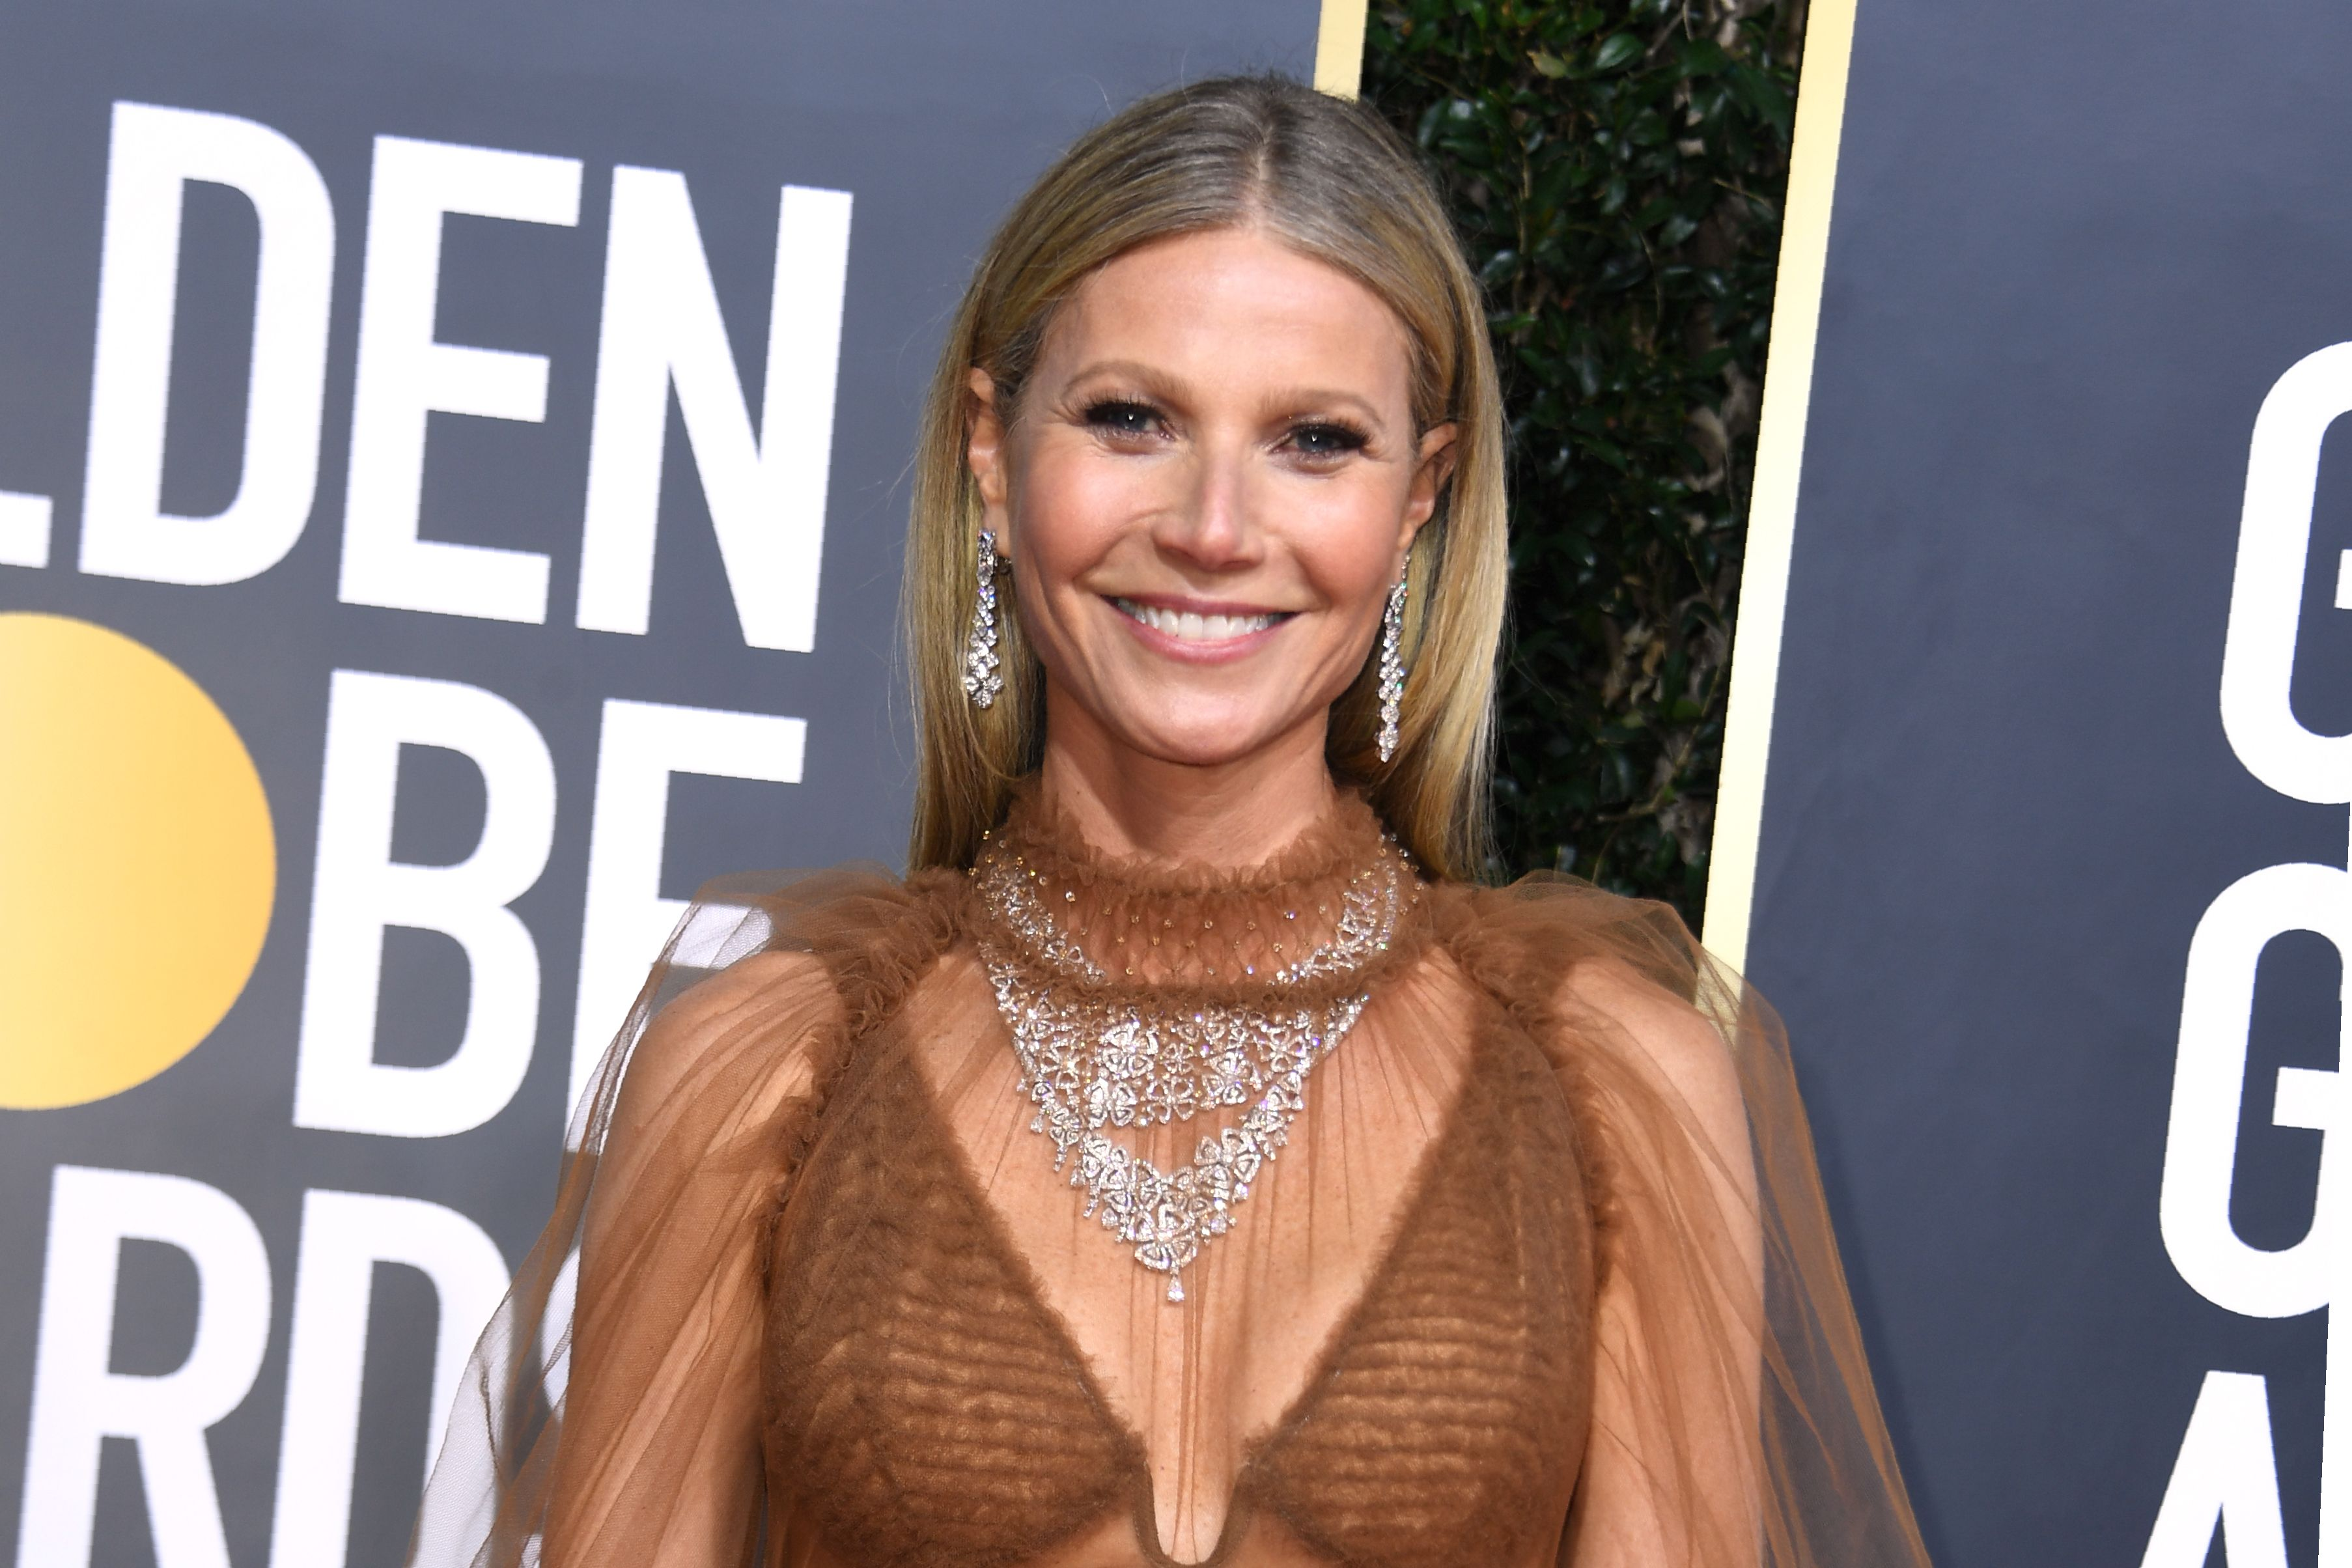 Gwyneth Paltrow posed in the buff for her 48th birthday. (Photo: VALERIE MACON/AFP via Getty Images)